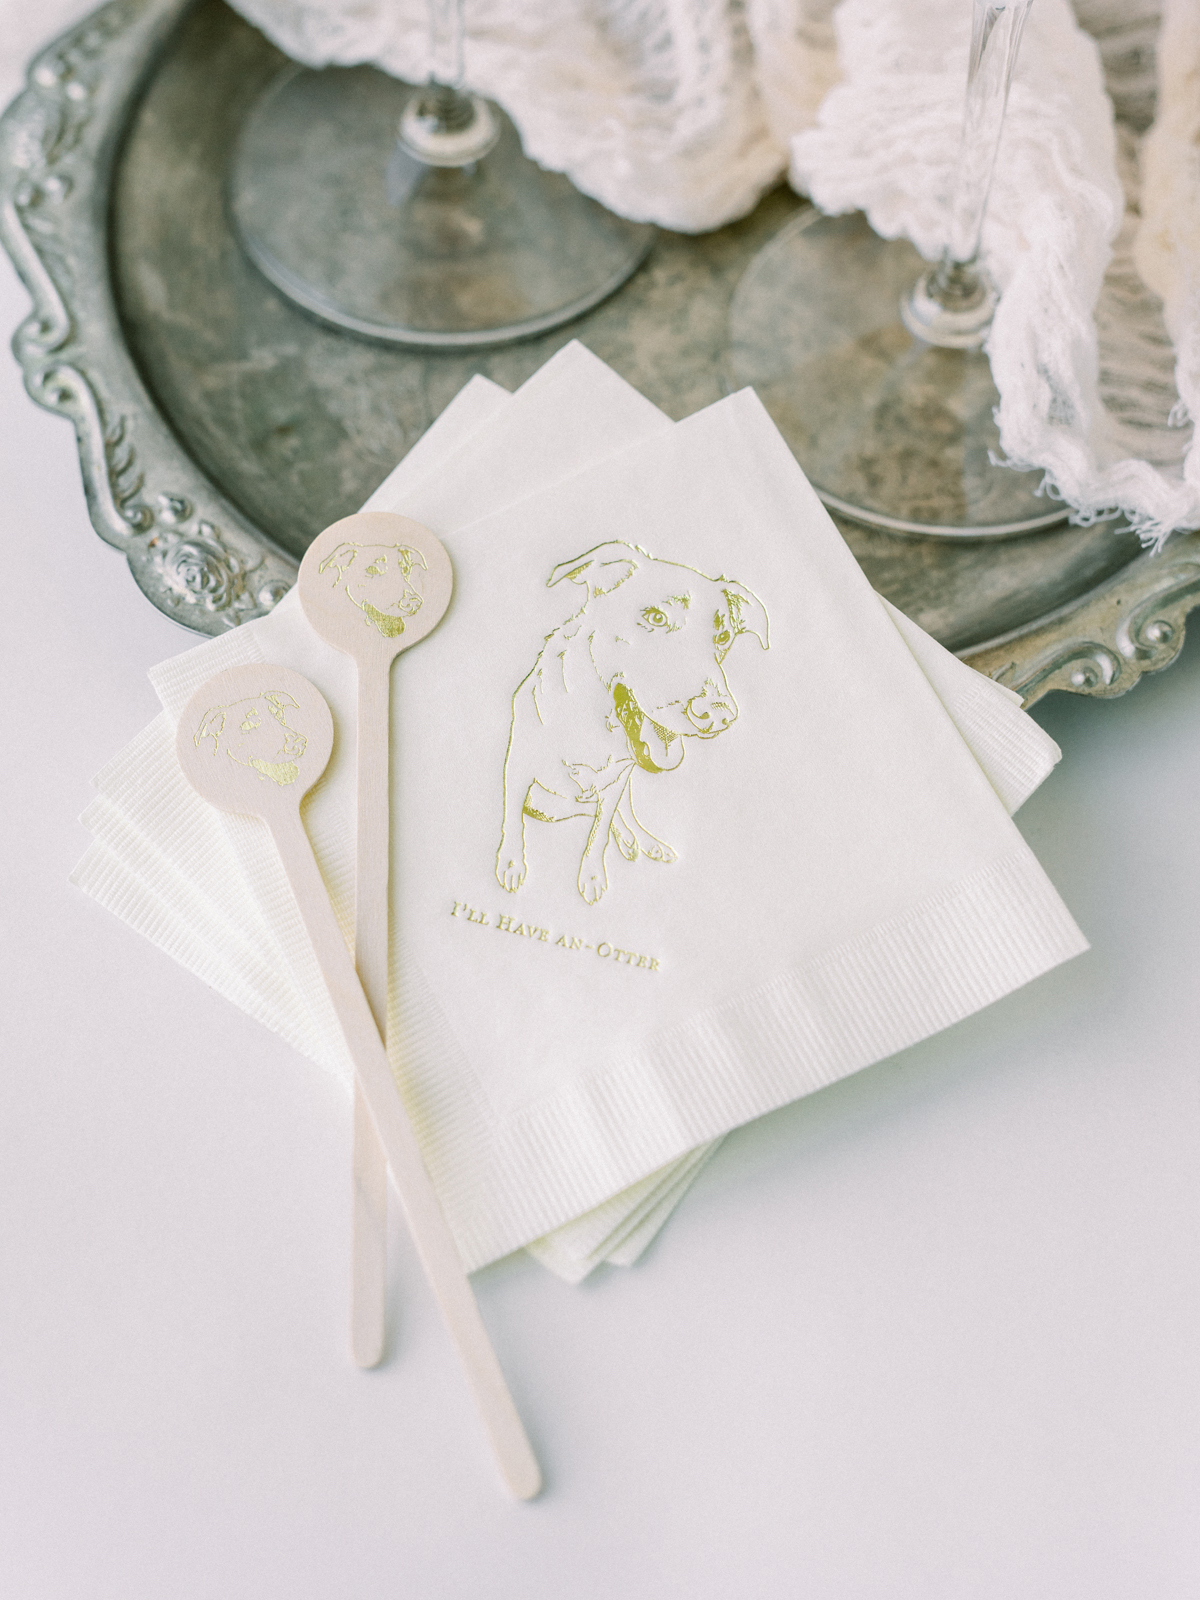 saghar ben wedding stirrers and napkins